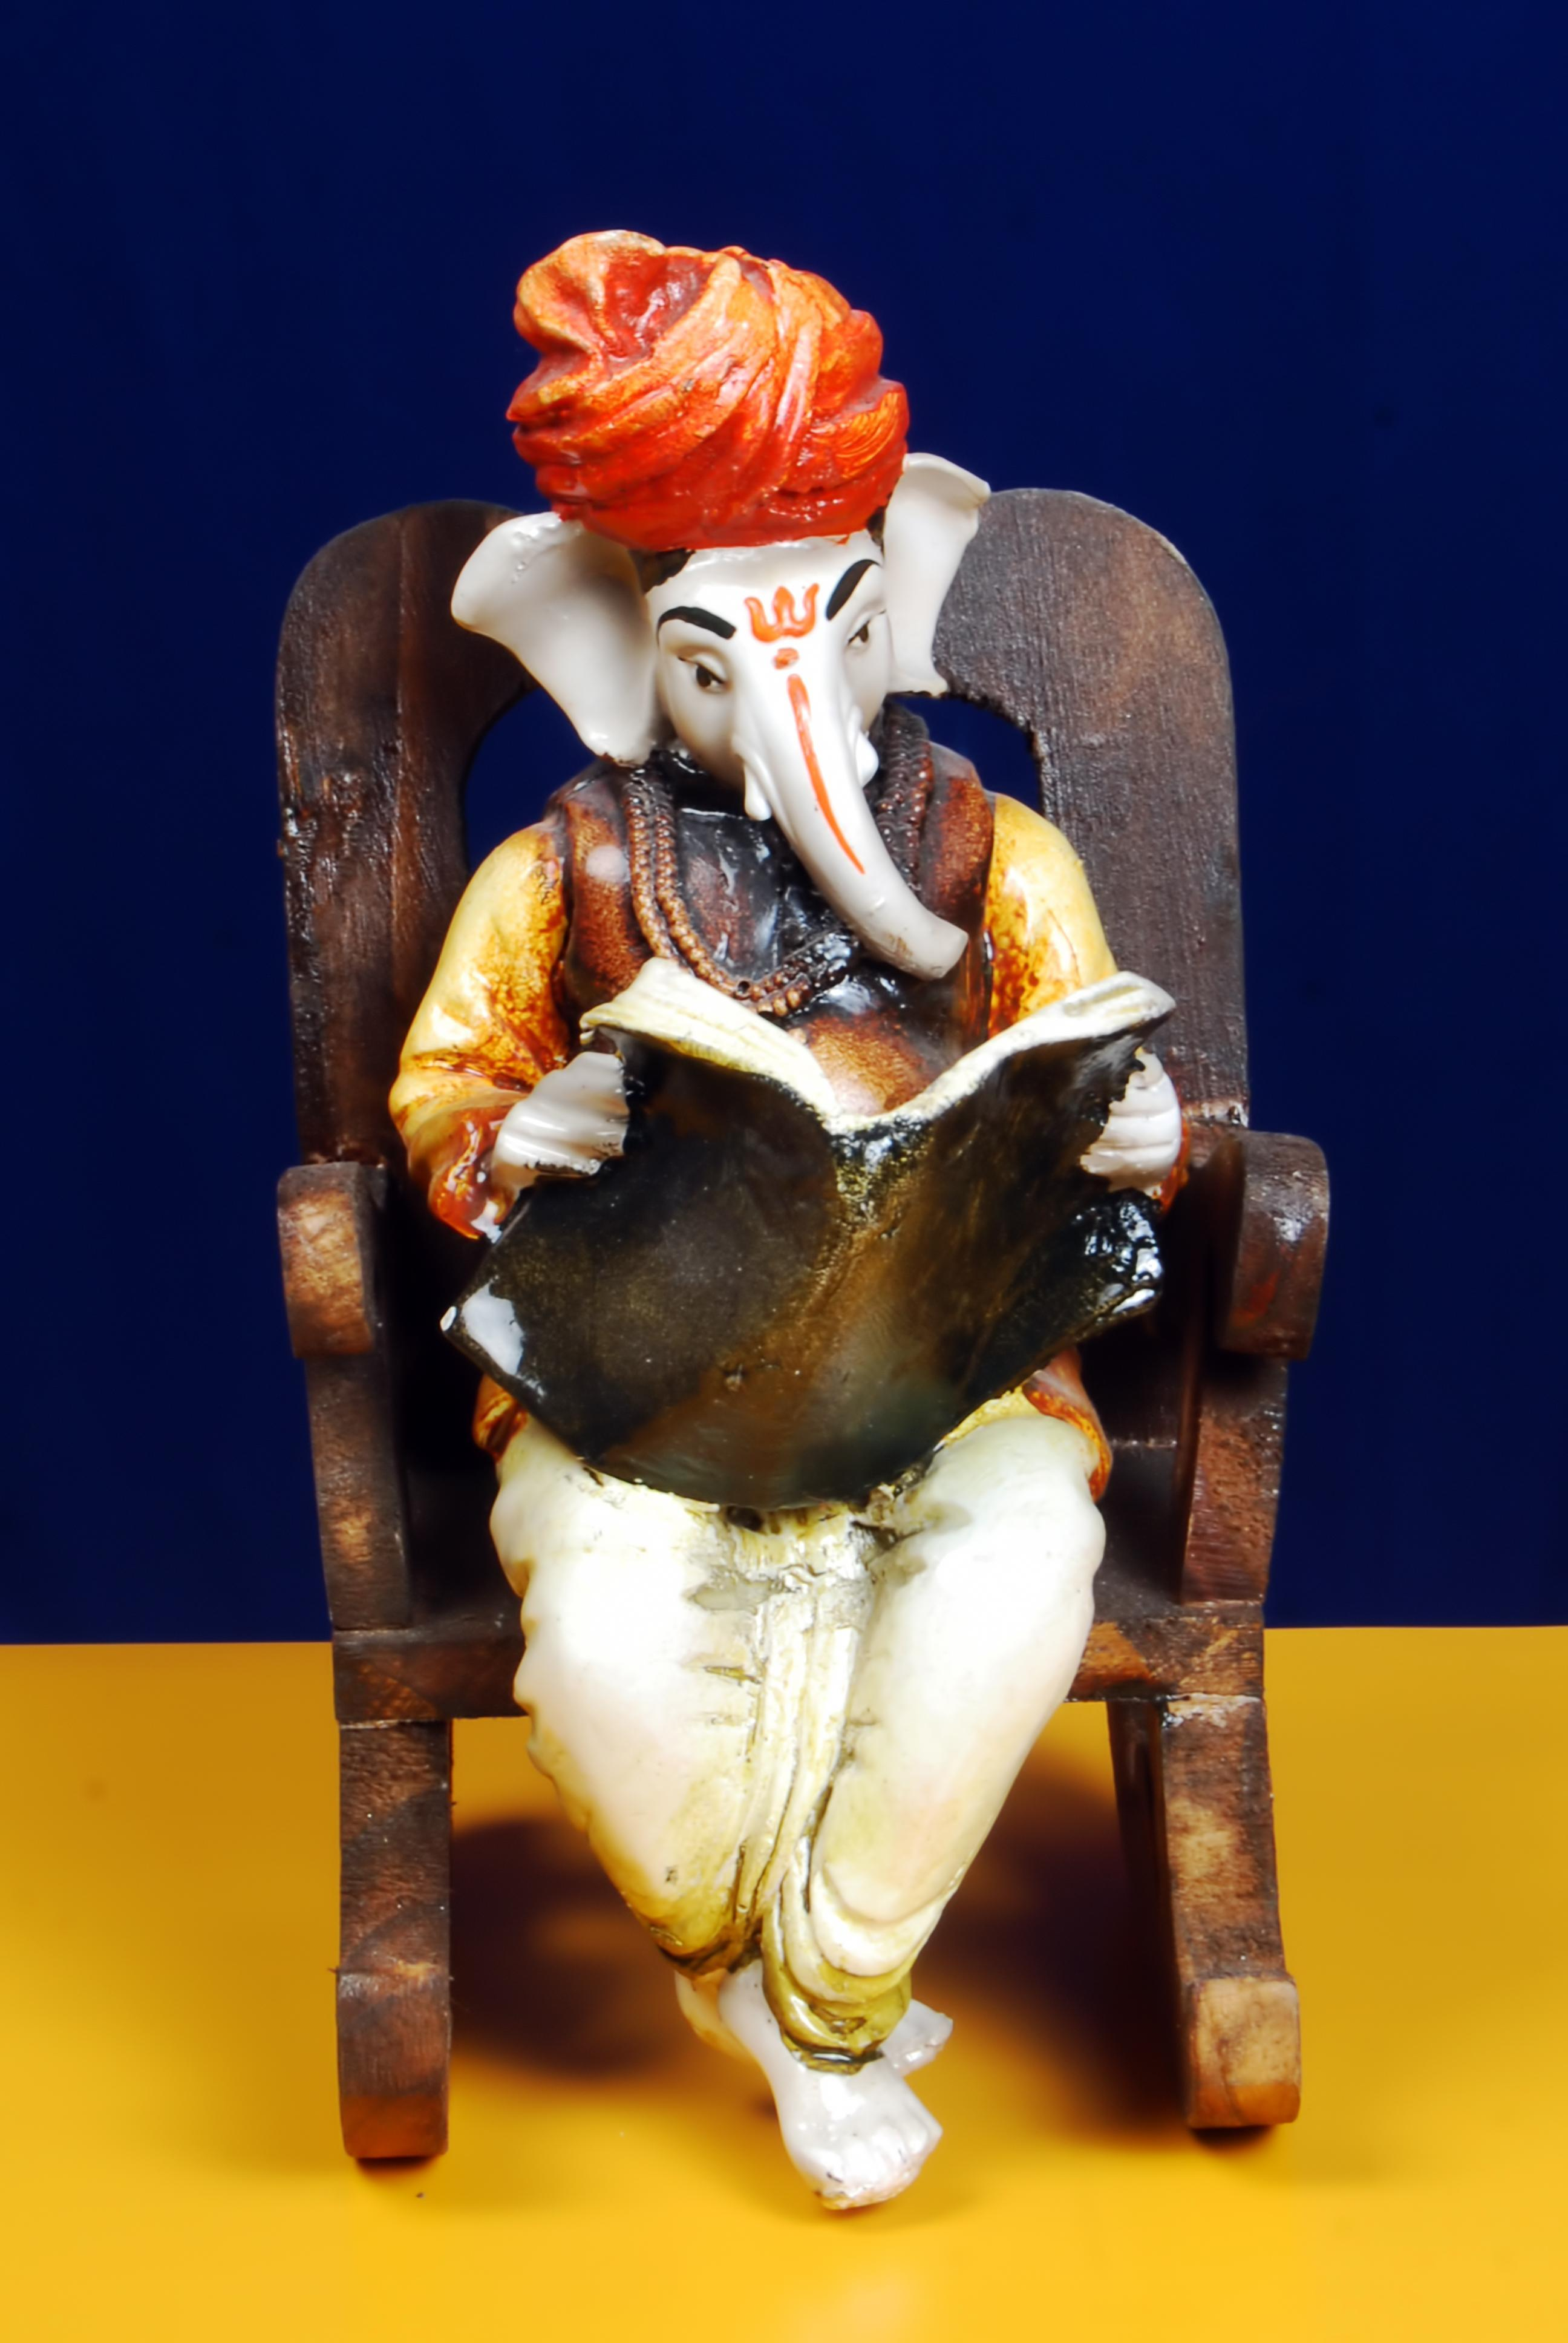 Ganesha-Ganesha-Reading-News-Paper-on-a-Wooden-Chair-Best-Price-wallpaper-wp4606145